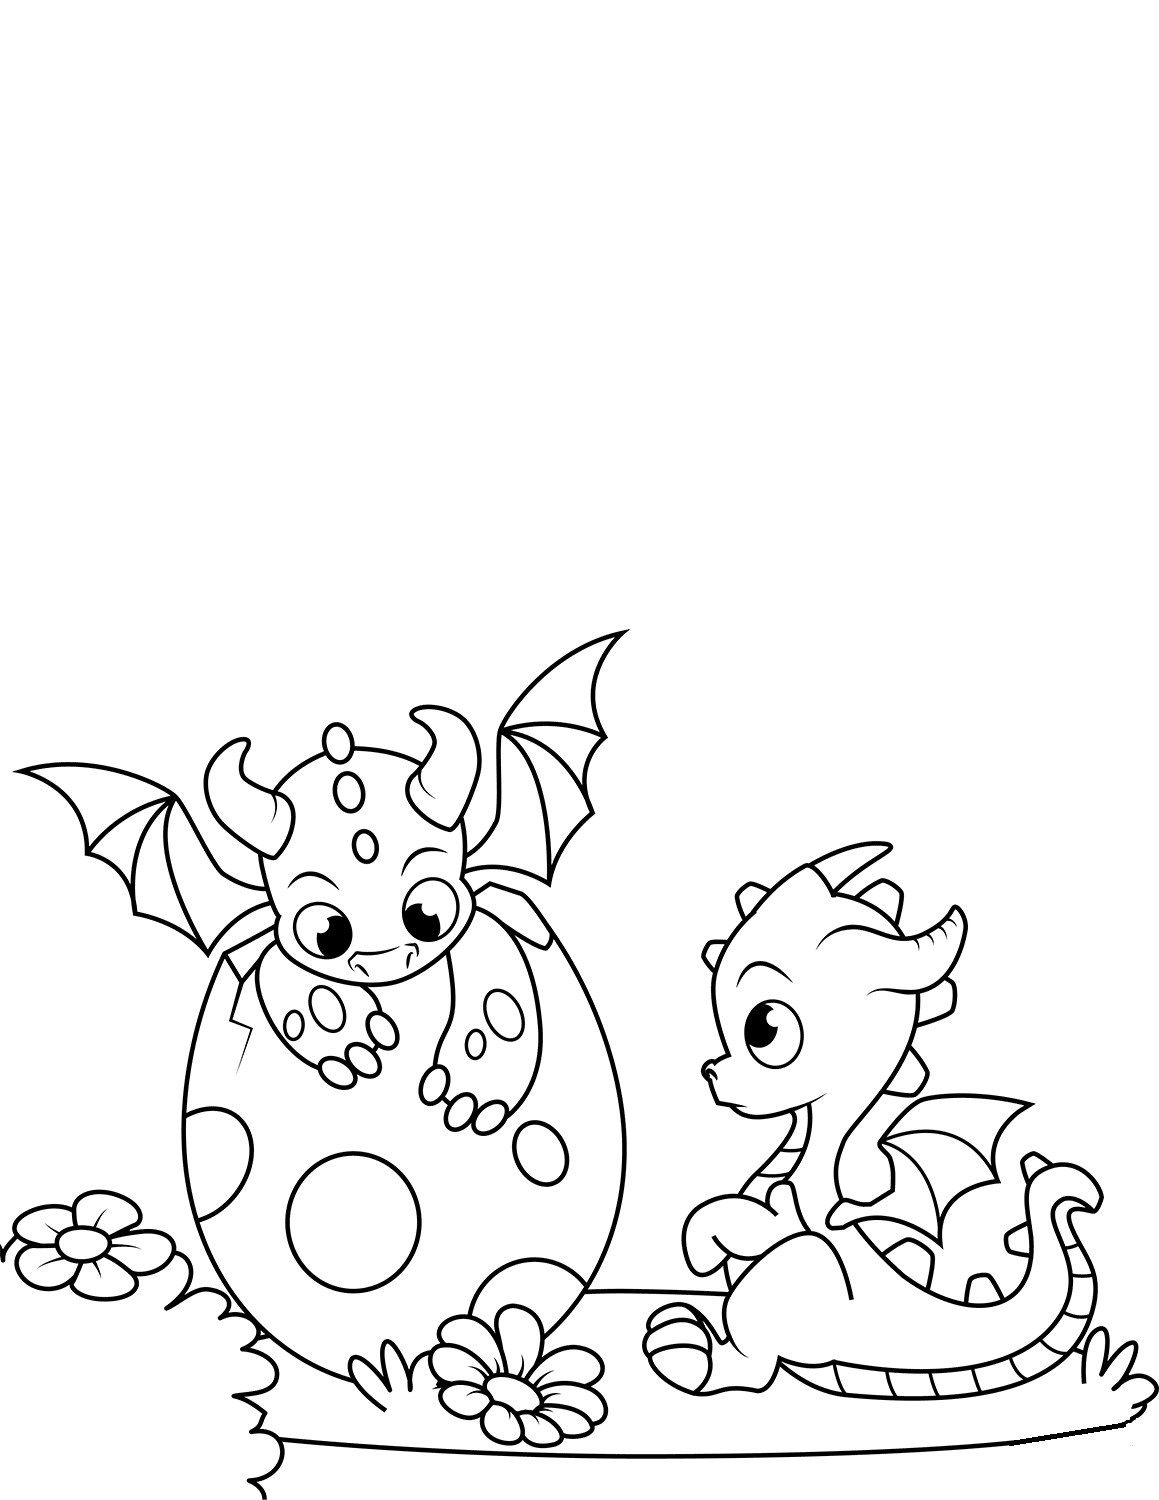 Cute Baby Dragon Coloring Pages For Children   Printable